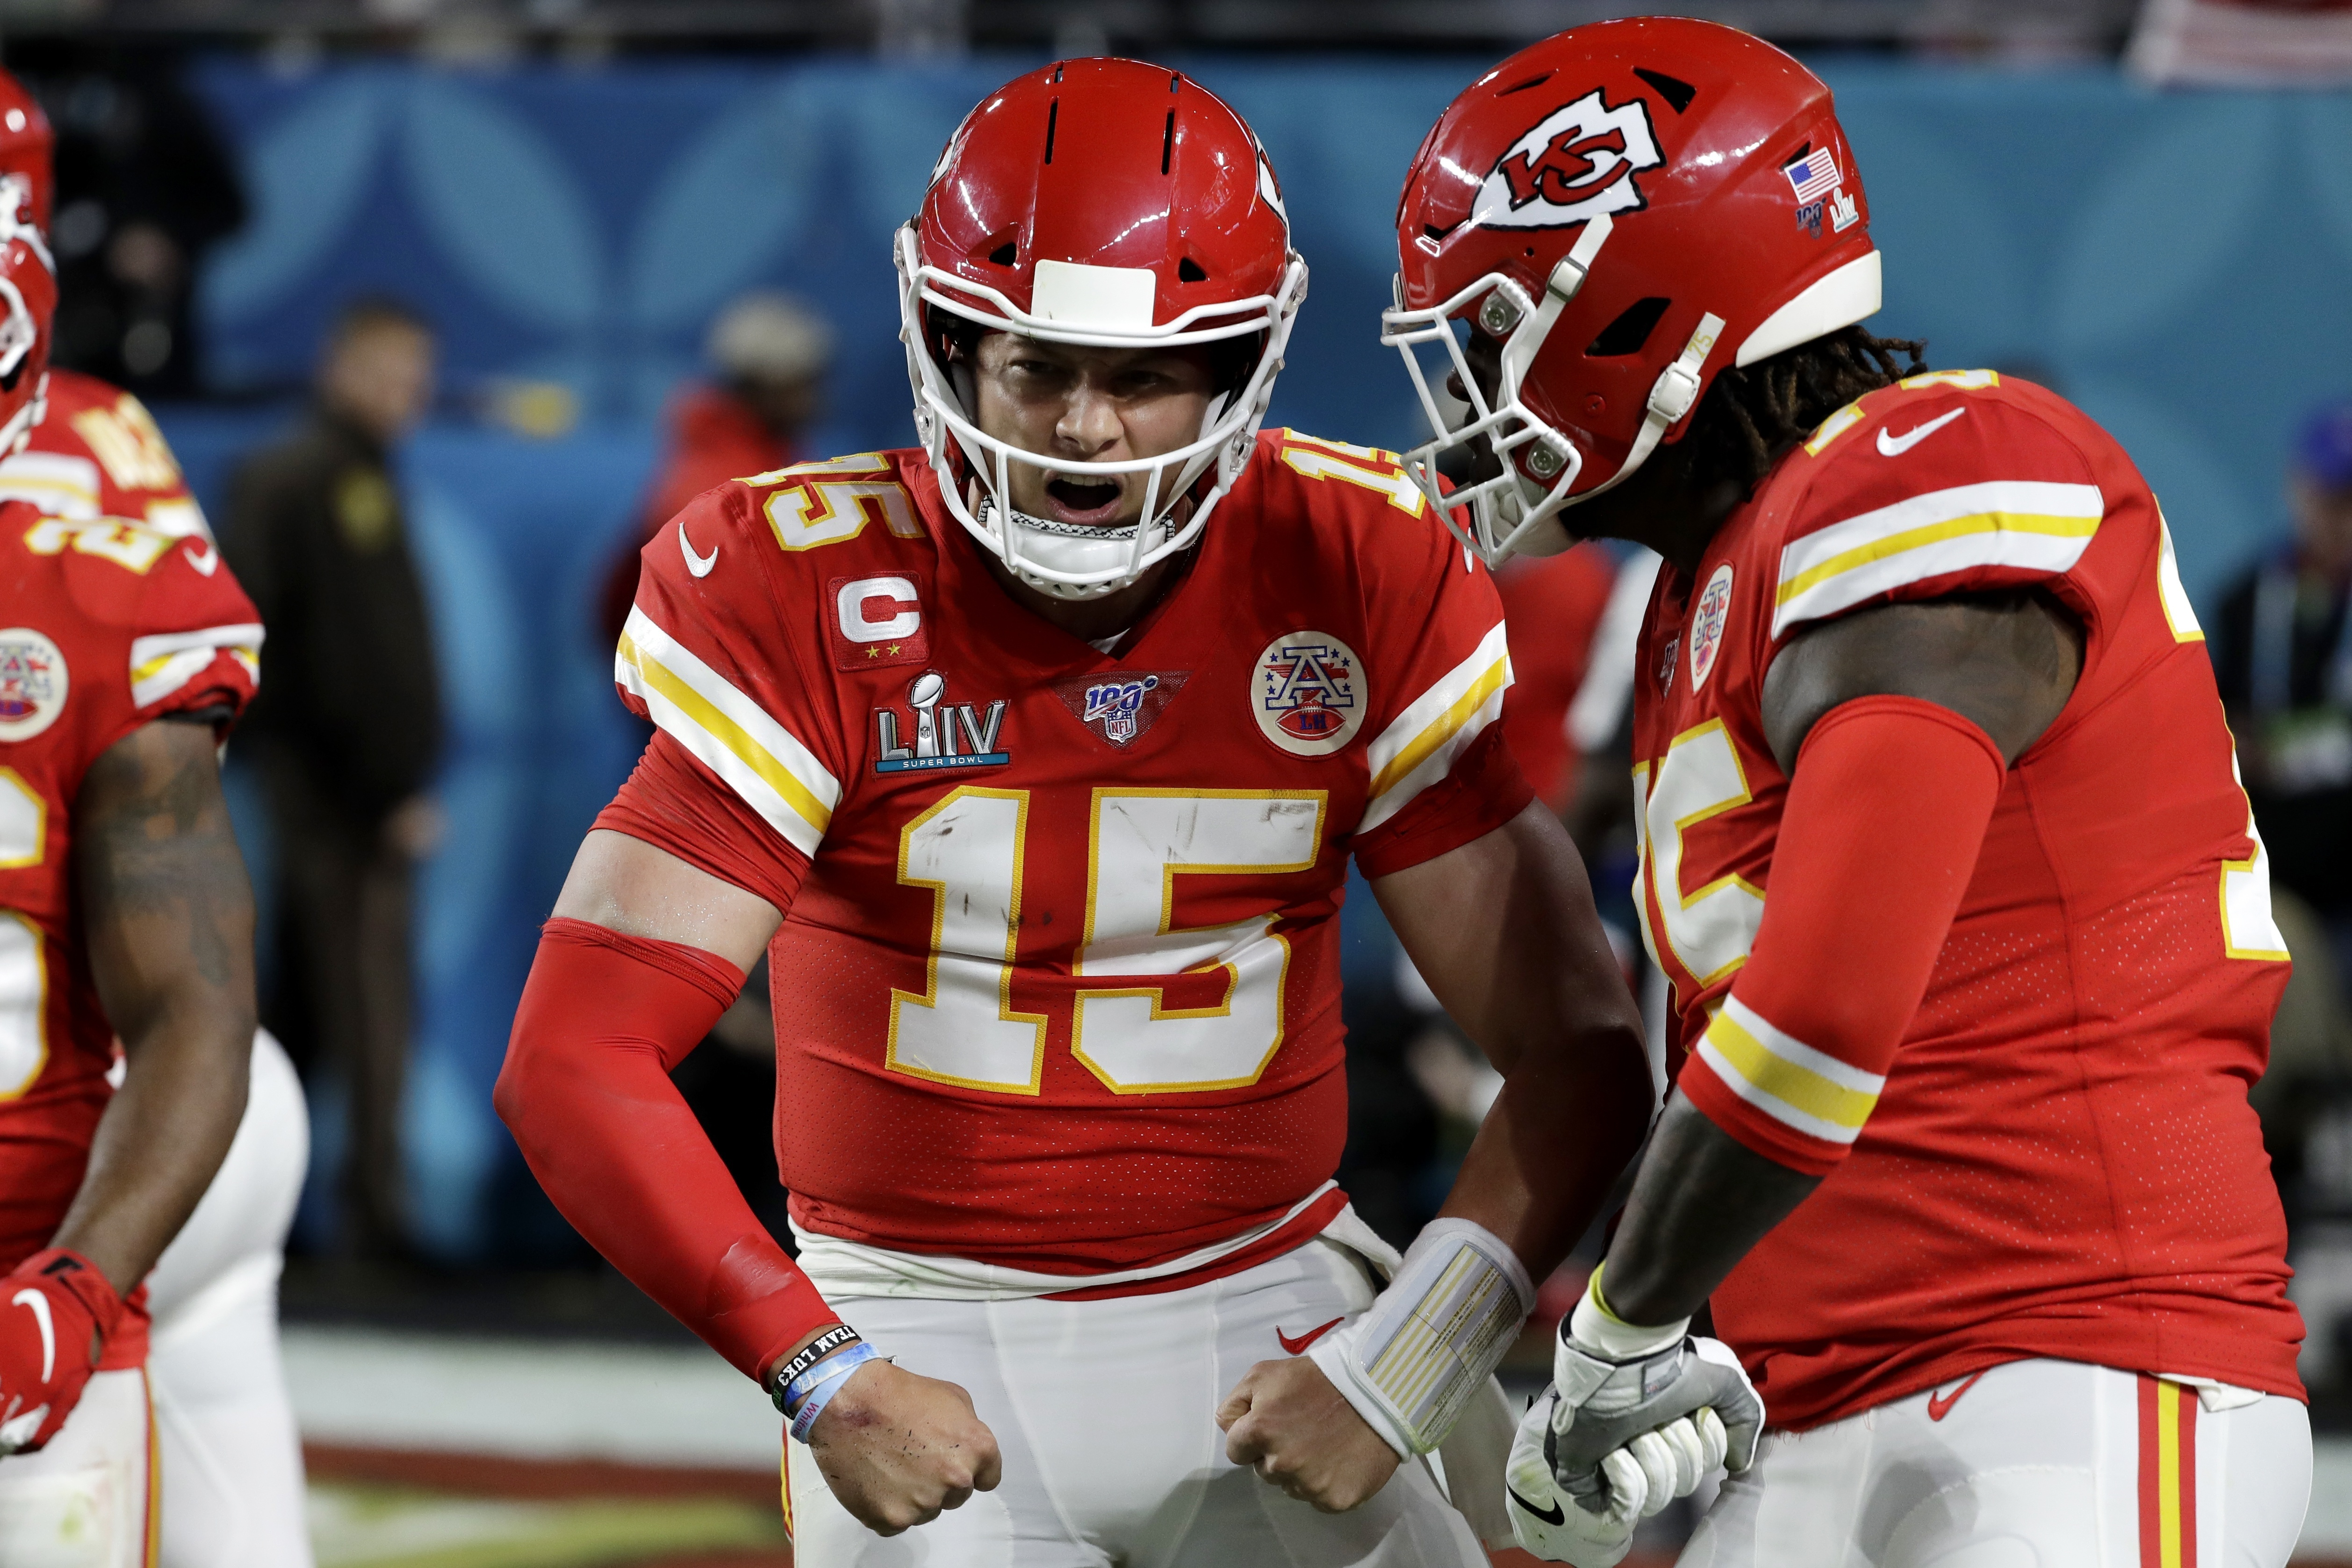 Kansas City Beats San Francisco 49ers In Super Bowl 54 Live Score Updates Tv Channel How To Watch Free Live Stream Online 2 20 2020 Oregonlive Com